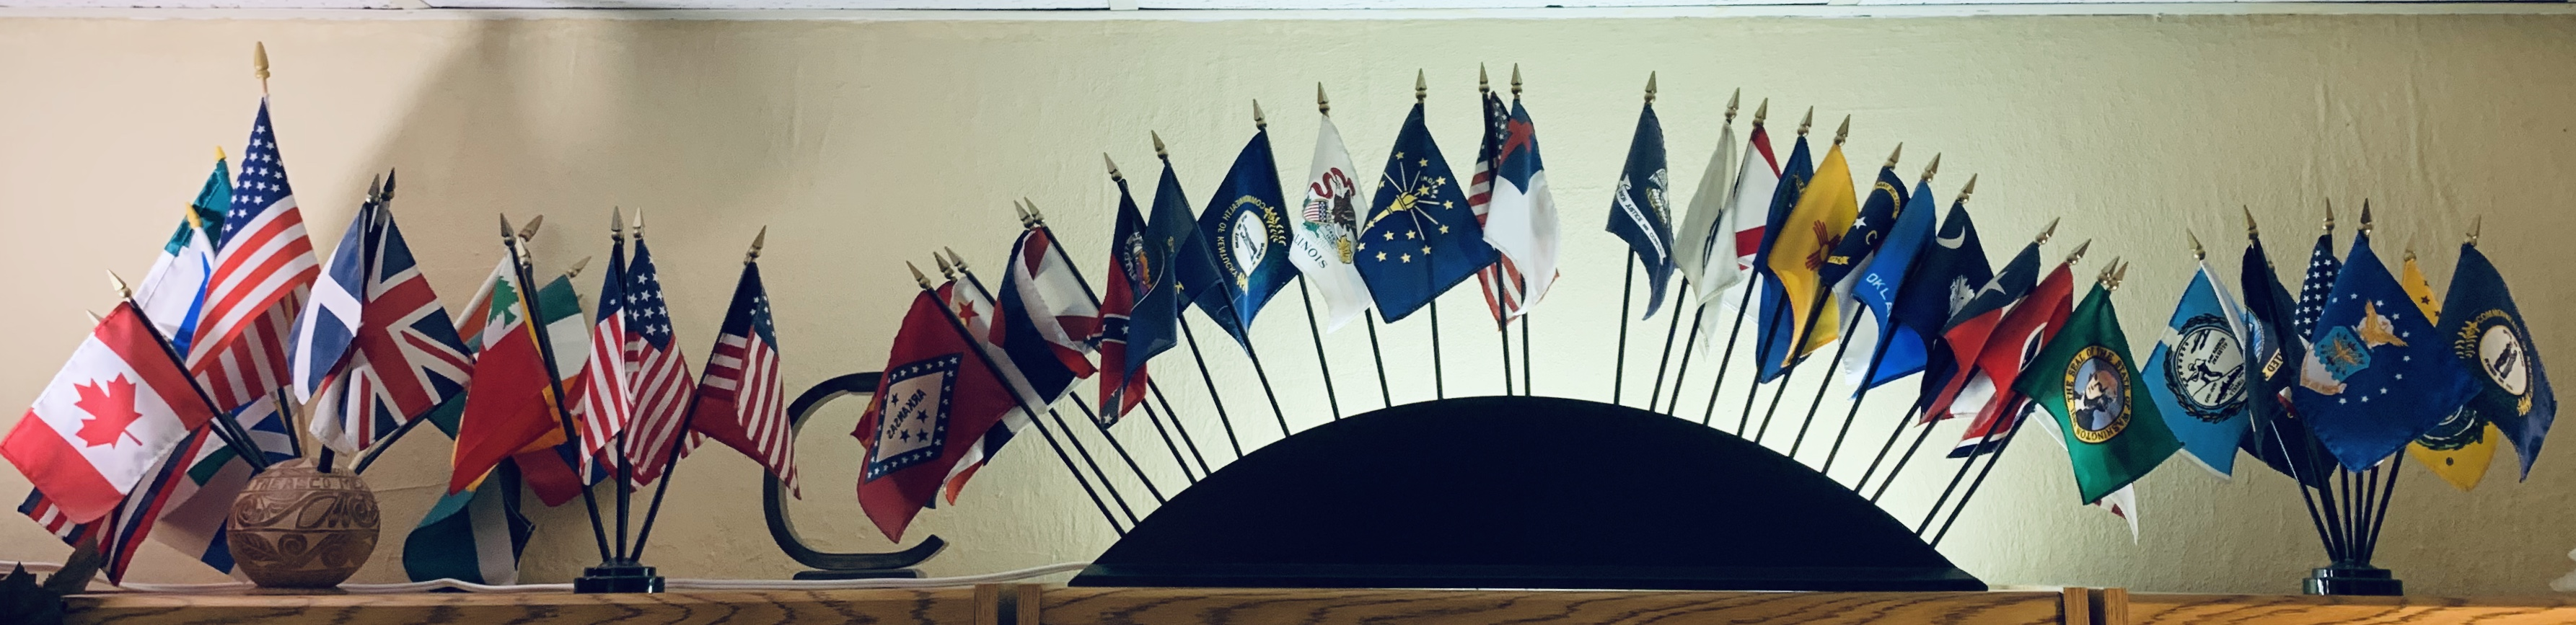 PP - 2nd PIC - Vexillology -- Flags in Stephen's office